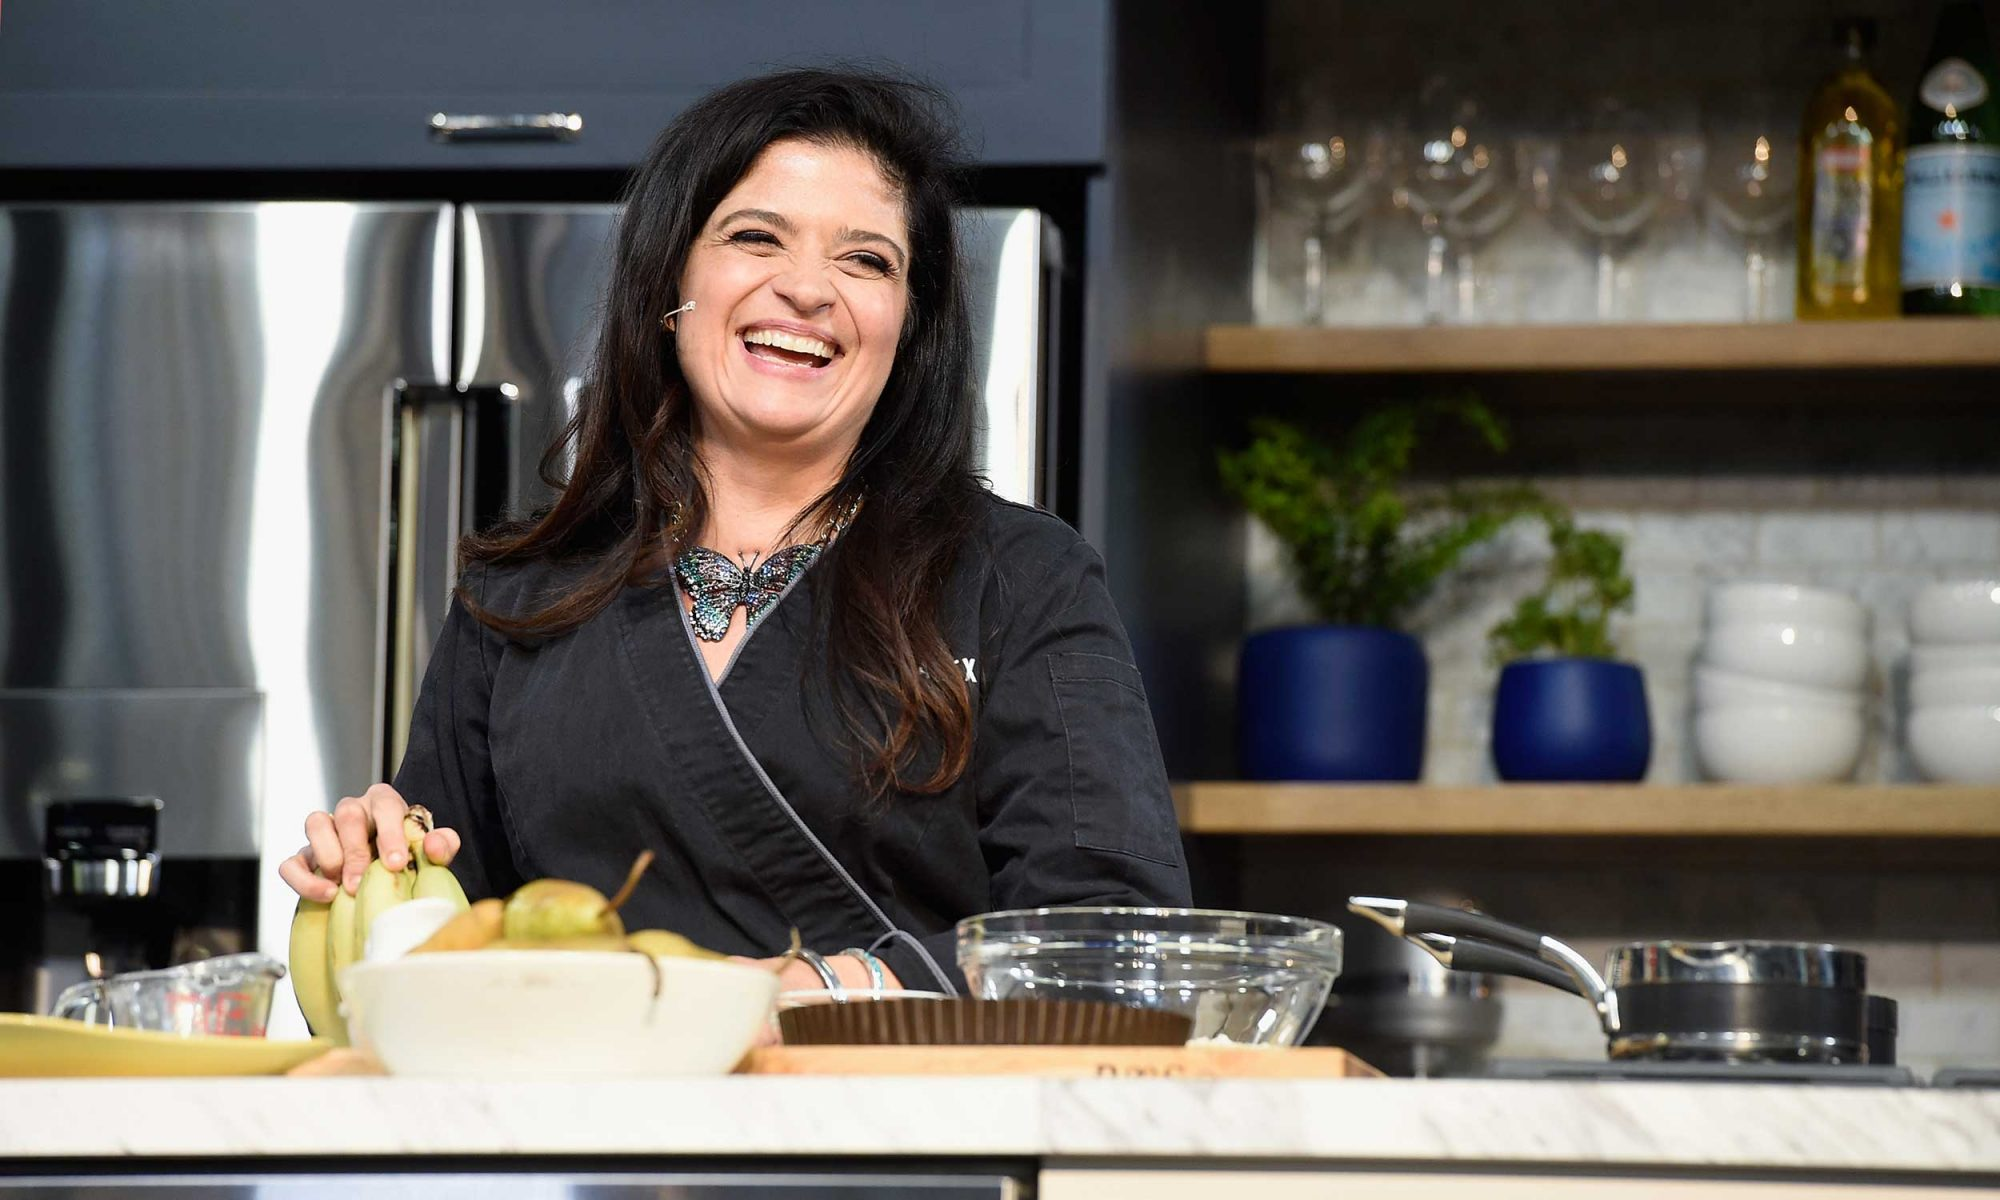 EC: Alex Guarnaschelli Wants Pumpkin Pie in Her Pumpkin Spice Latte